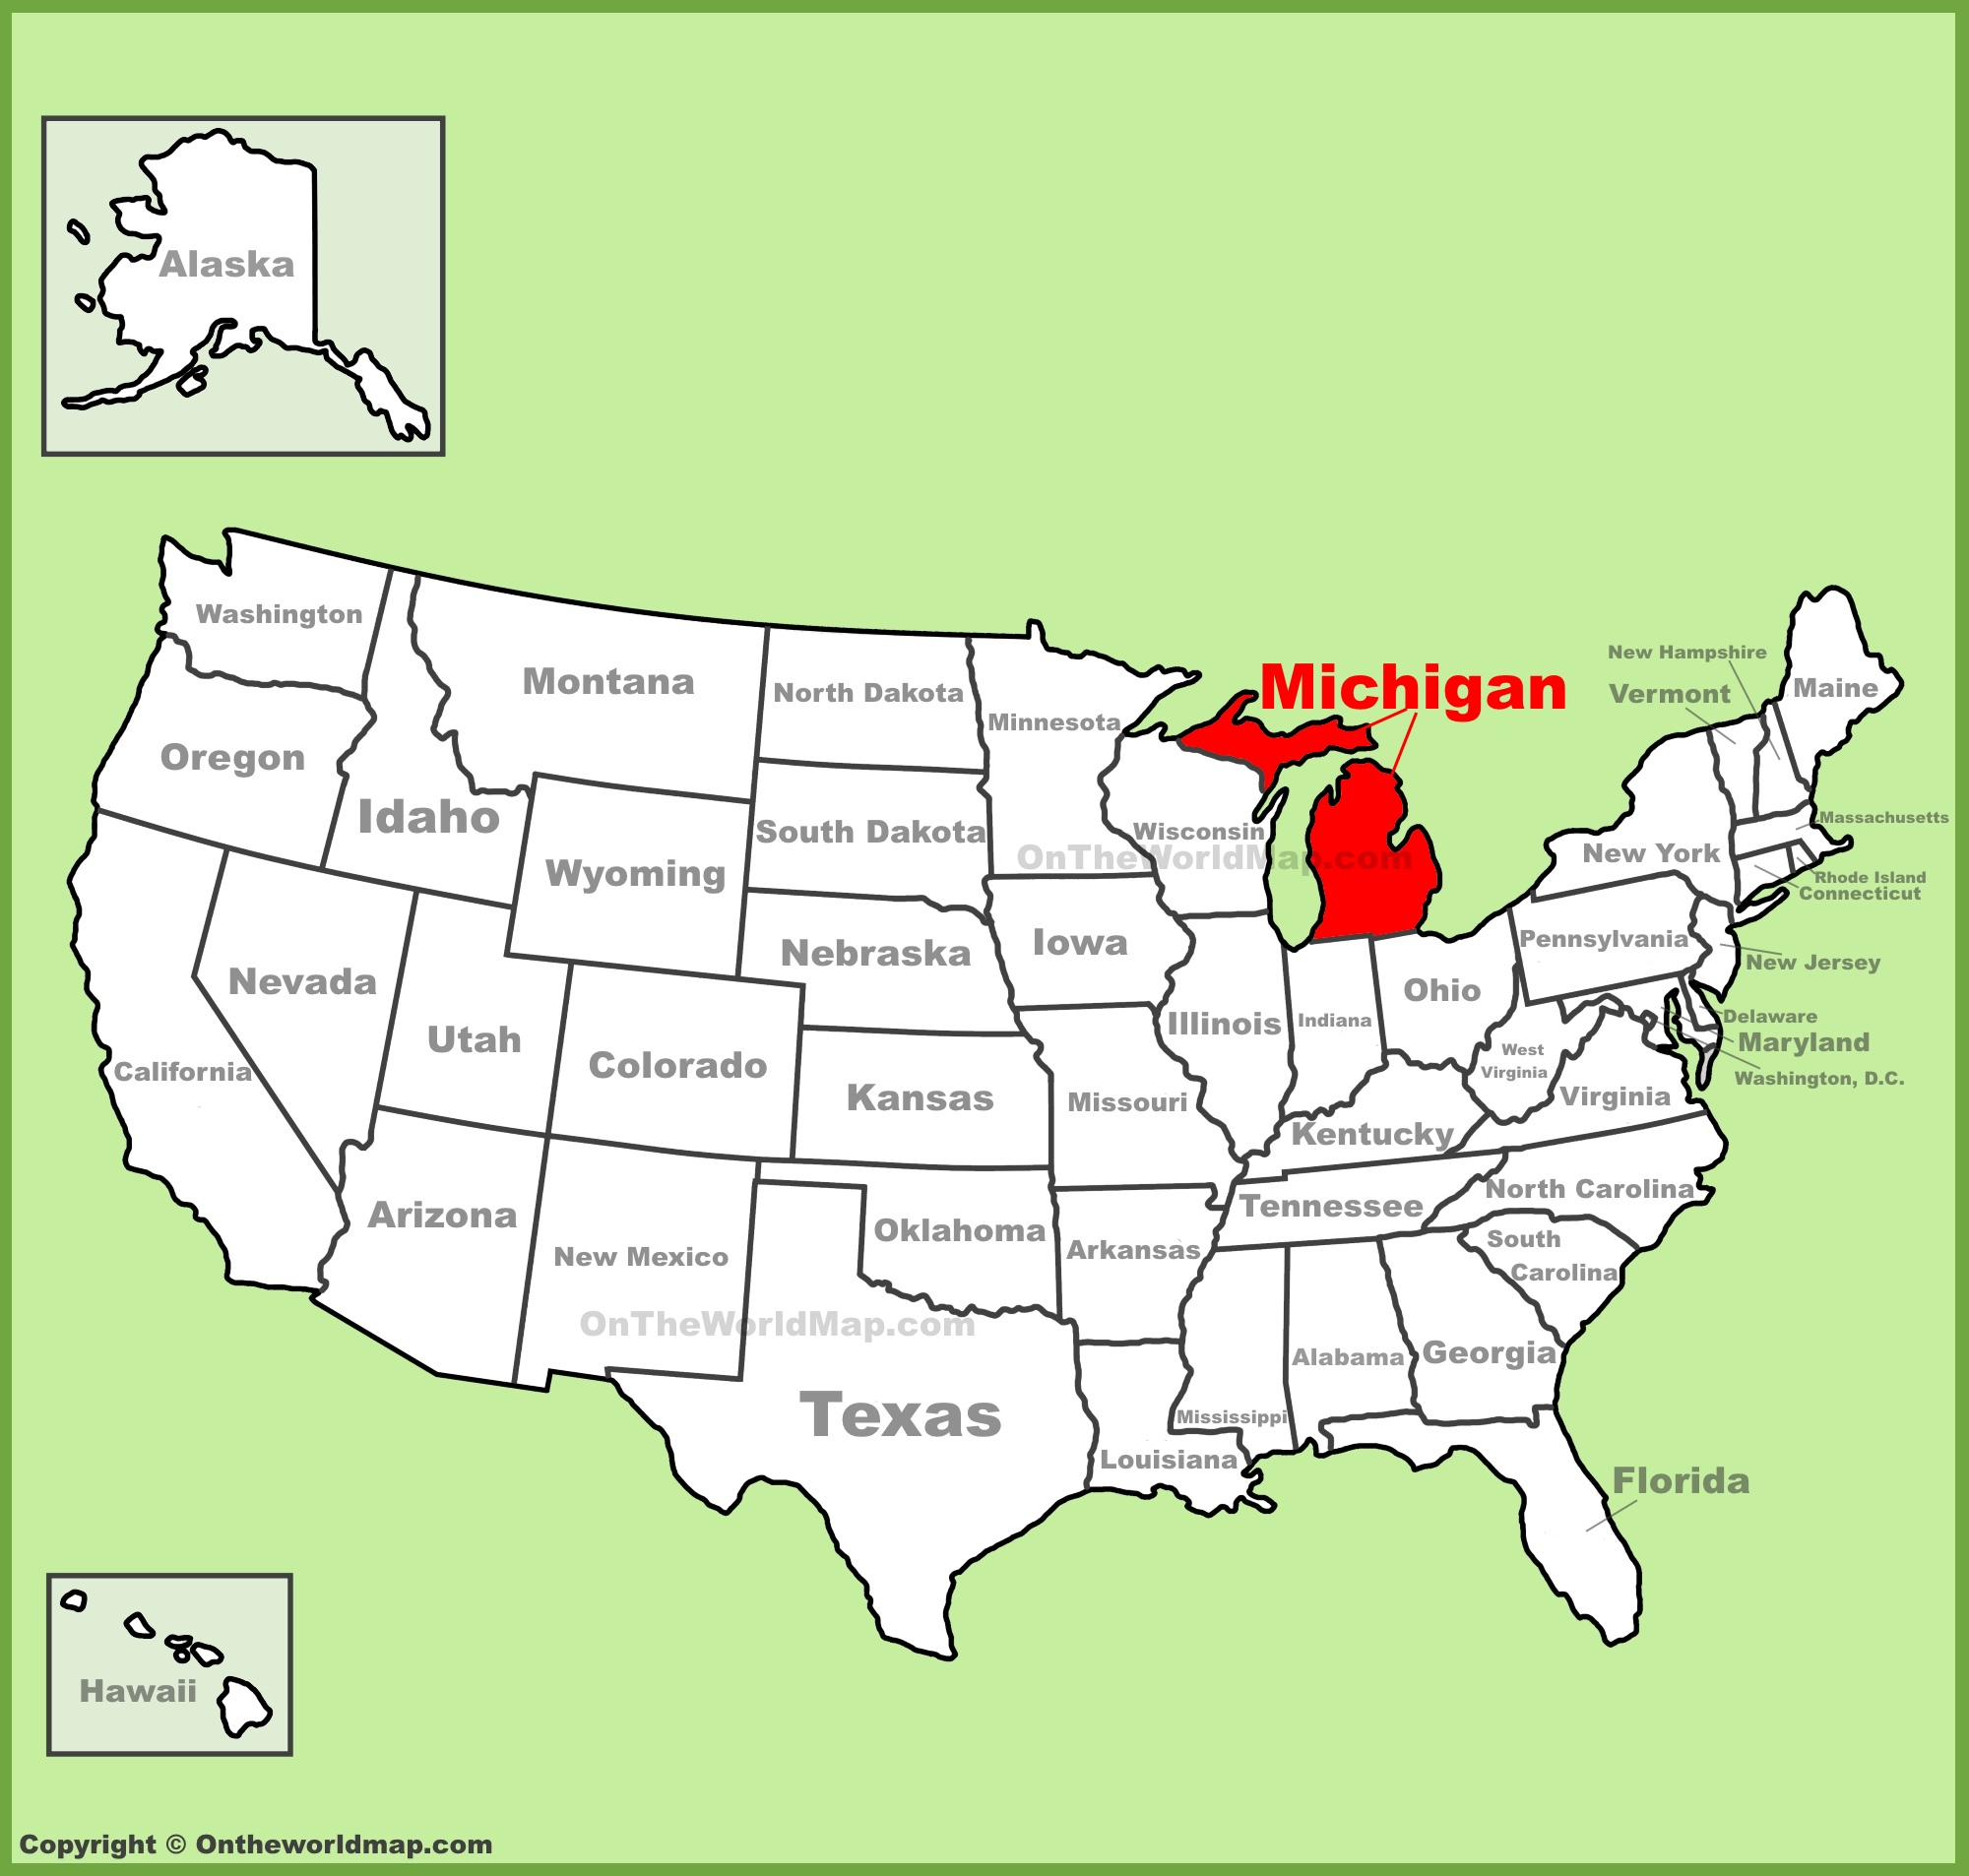 Michigan On Map Michigan location on the U.S. Map